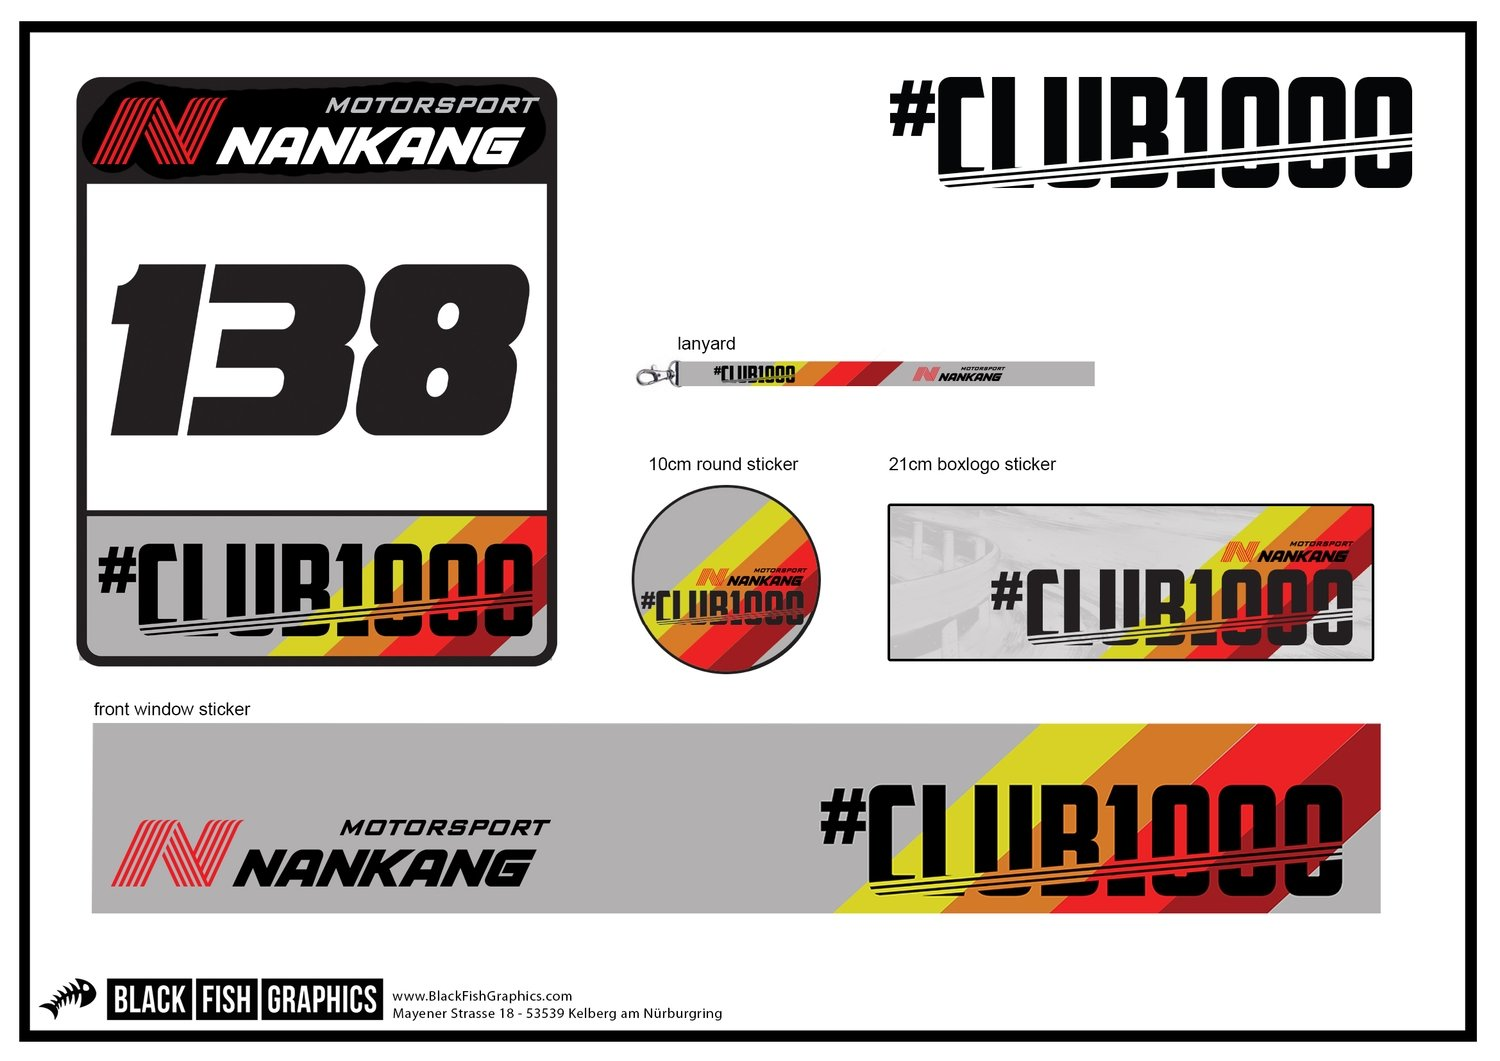 #Club1000 2018 Membership Package